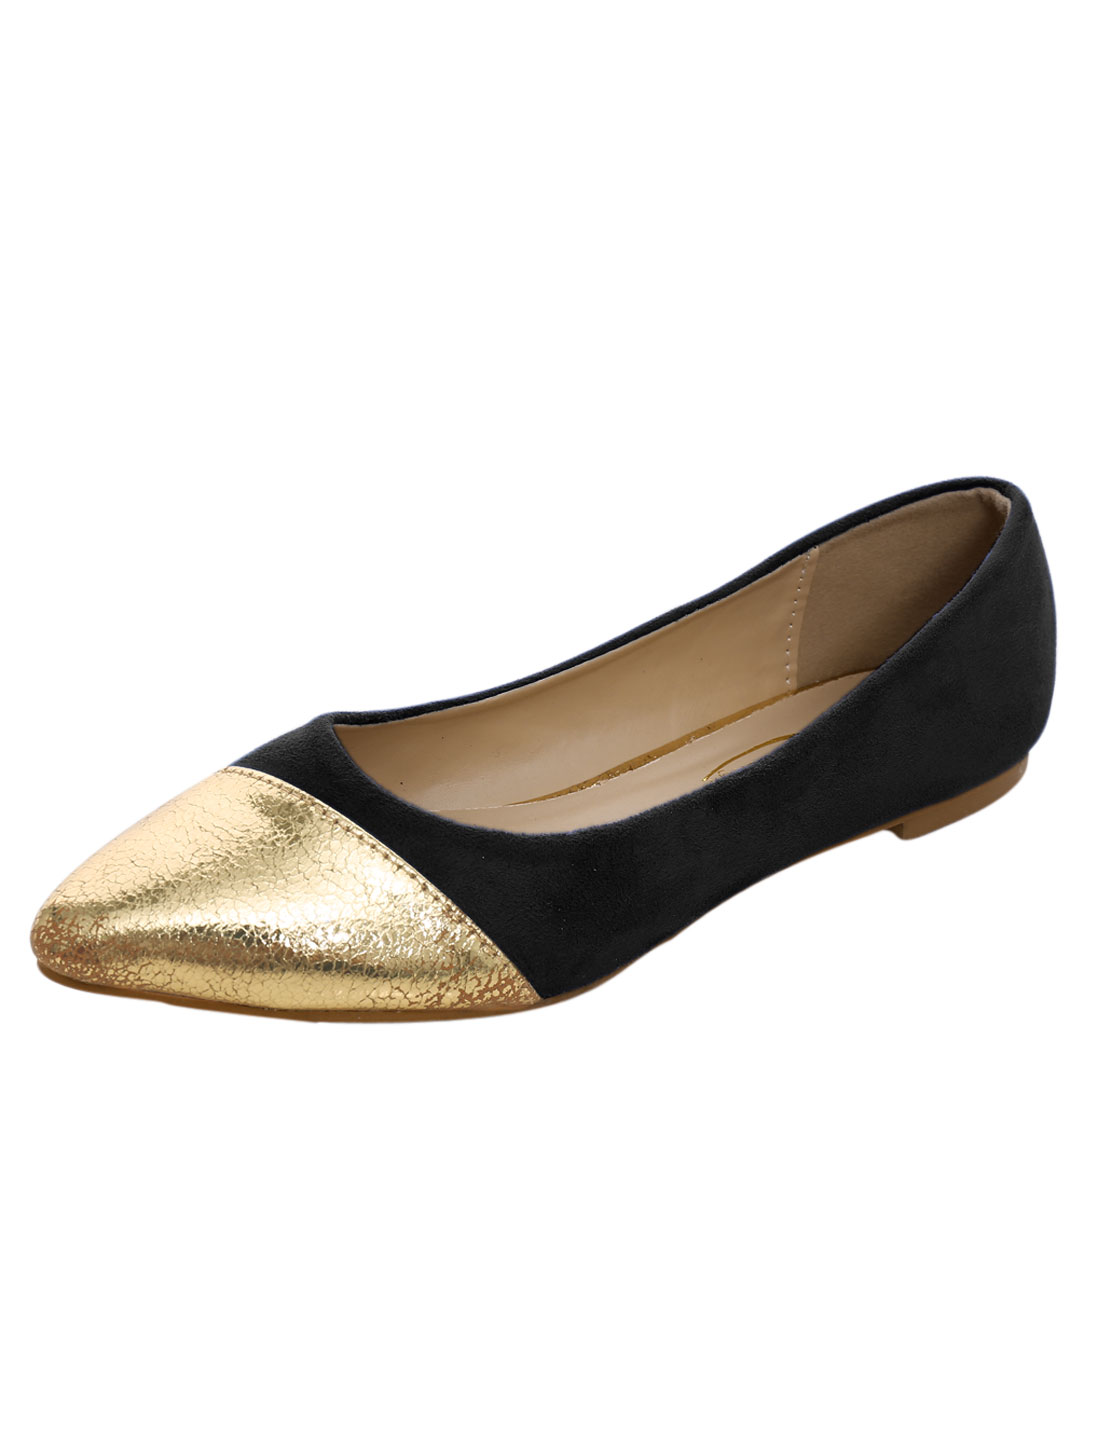 Women Contrasting Color Panel Pointed Toe Leisure Flats Shoes Solid Black US 8.5